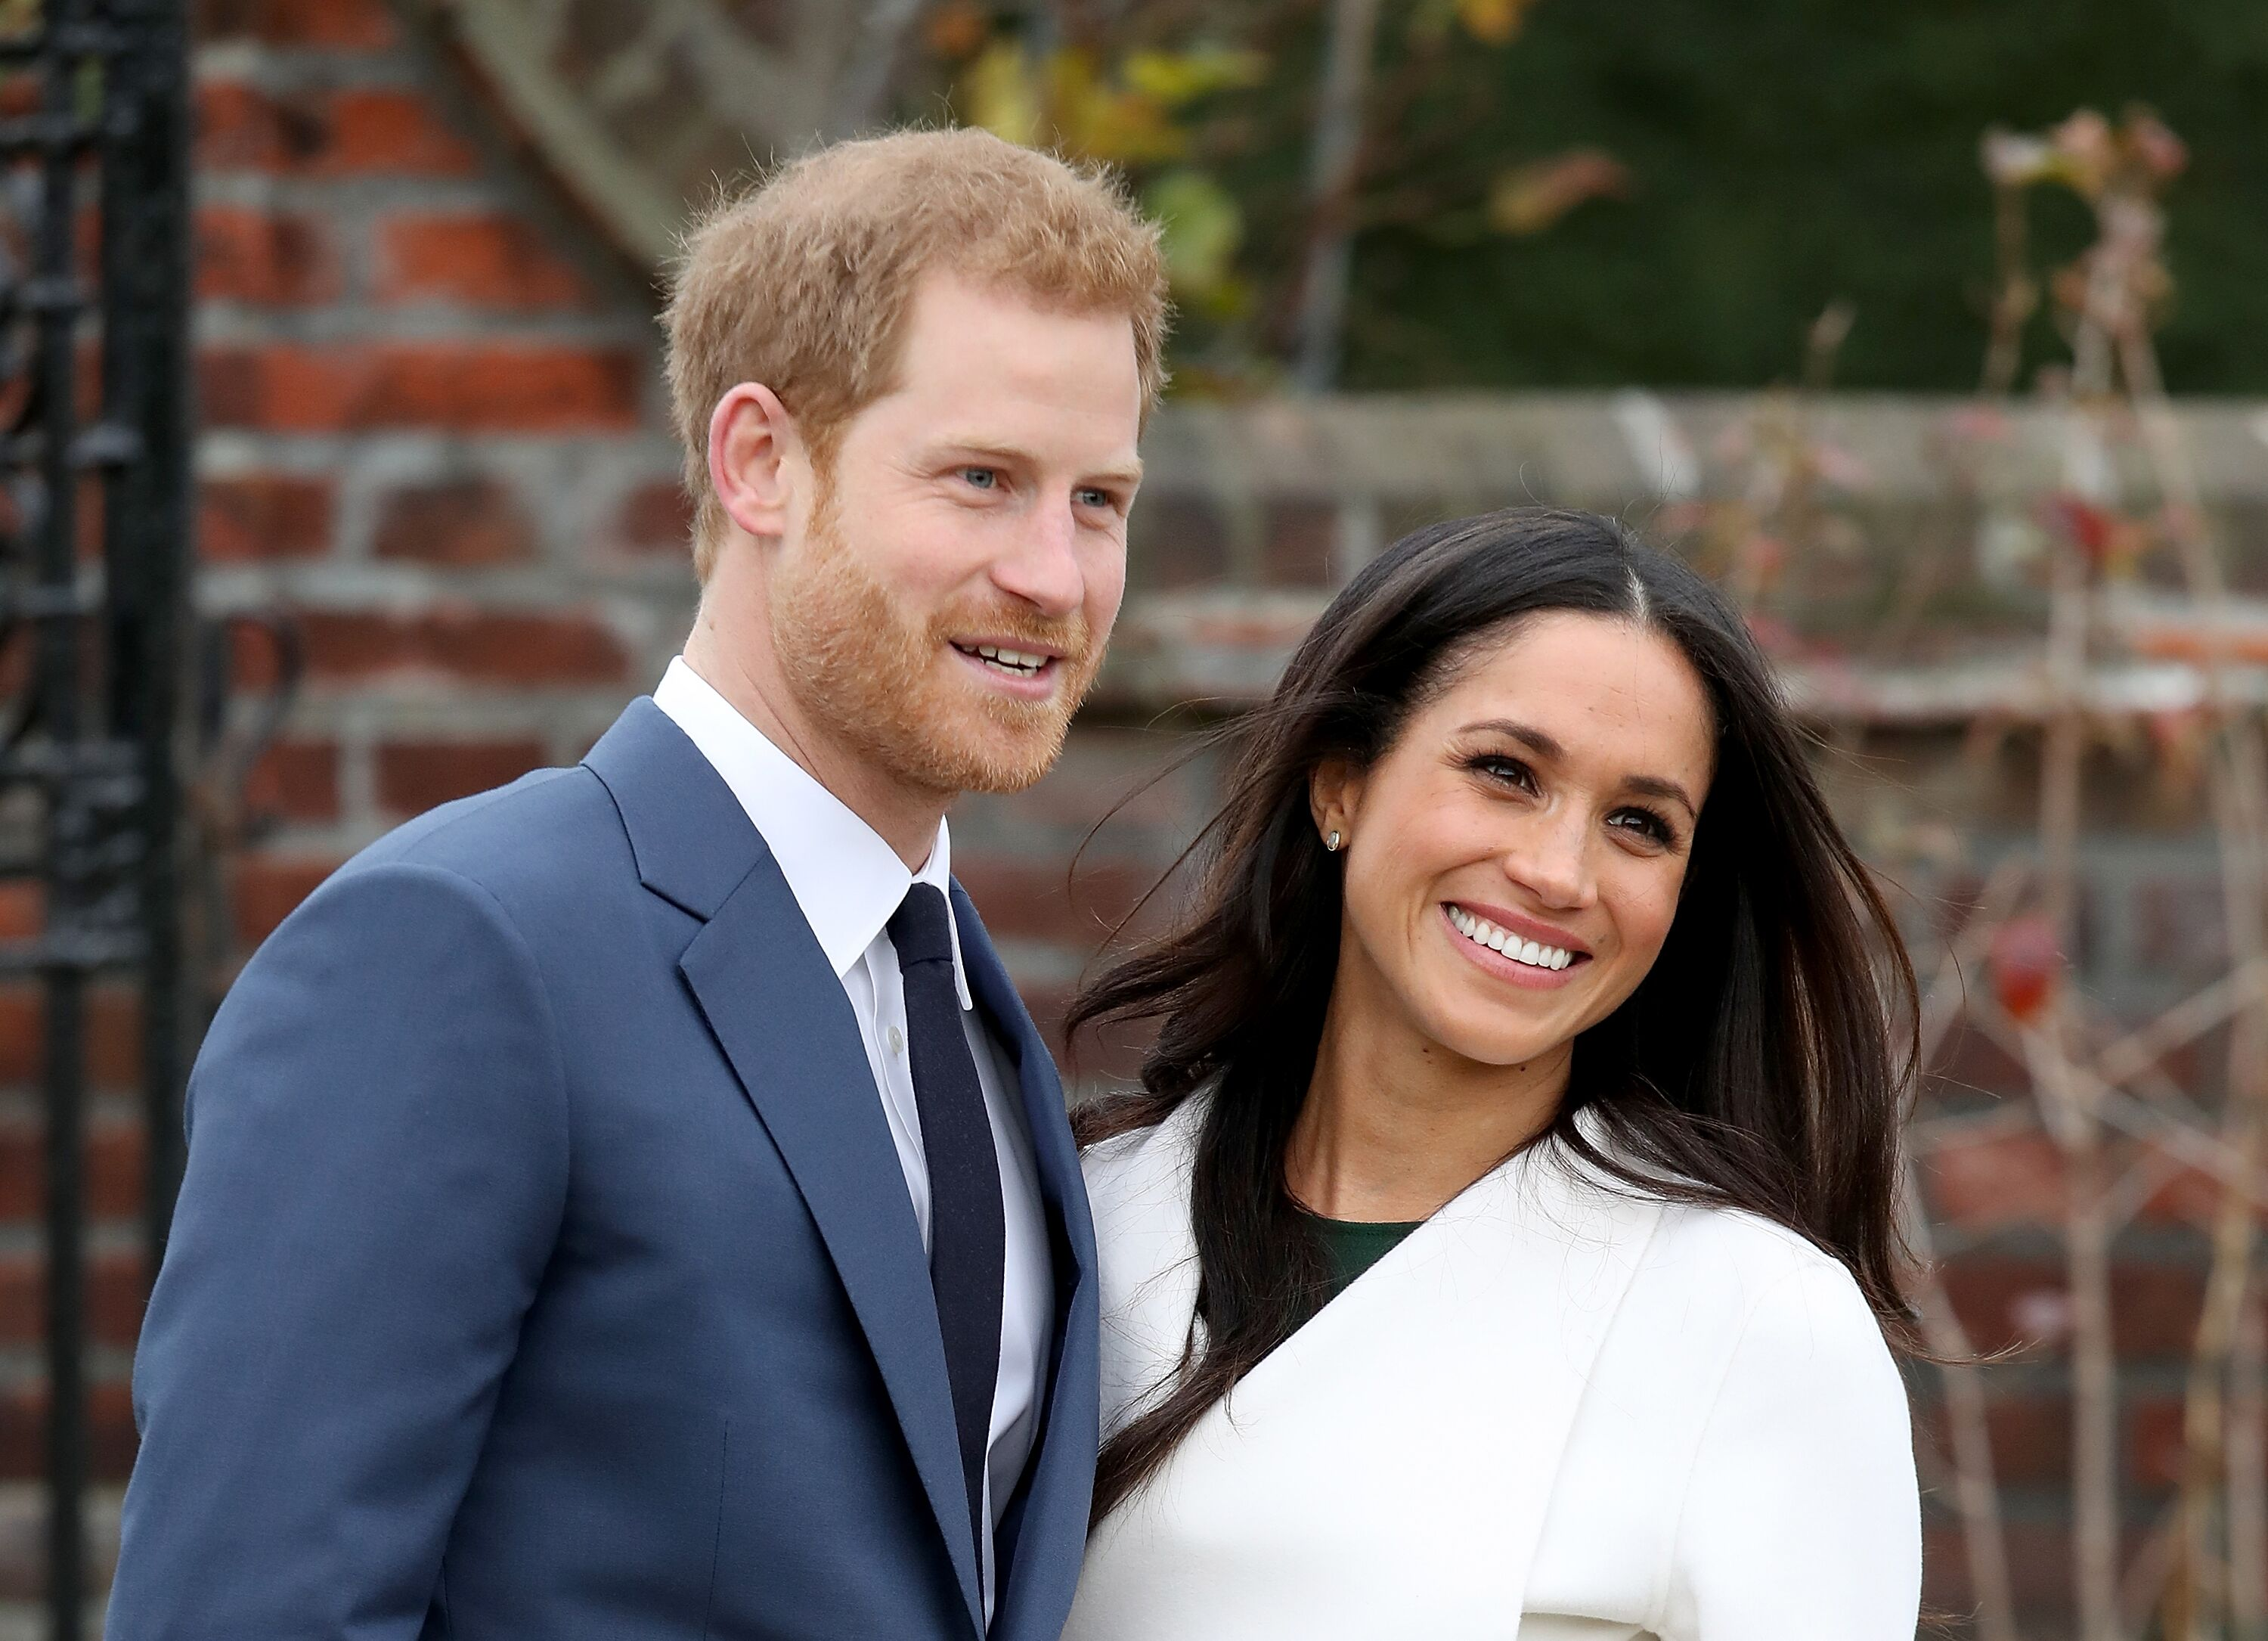 Le prince Harry et Meghan Markle au Sunken Gardens du palais de Kensington. | Source : Getty Images